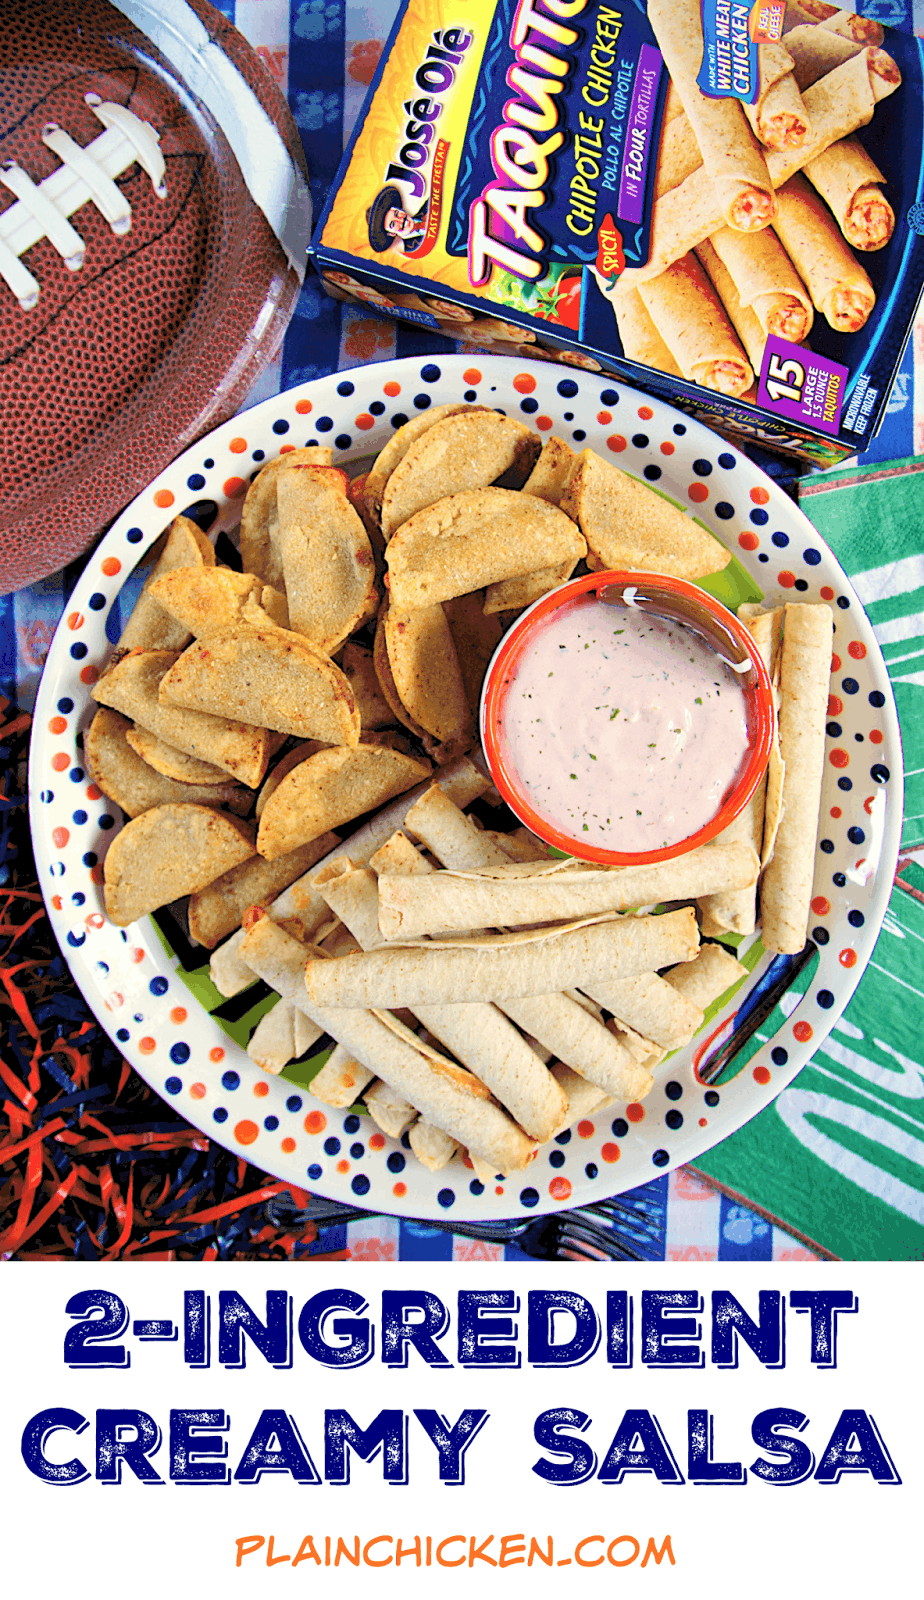 2-Ingredient Creamy Salsa Dip - literally takes 1 minute to make! I am totally addicted to this dip!!Pair with some José Olé frozen snacks for an easy tailgating feast! Also great on a salad or on top of a baked potato.